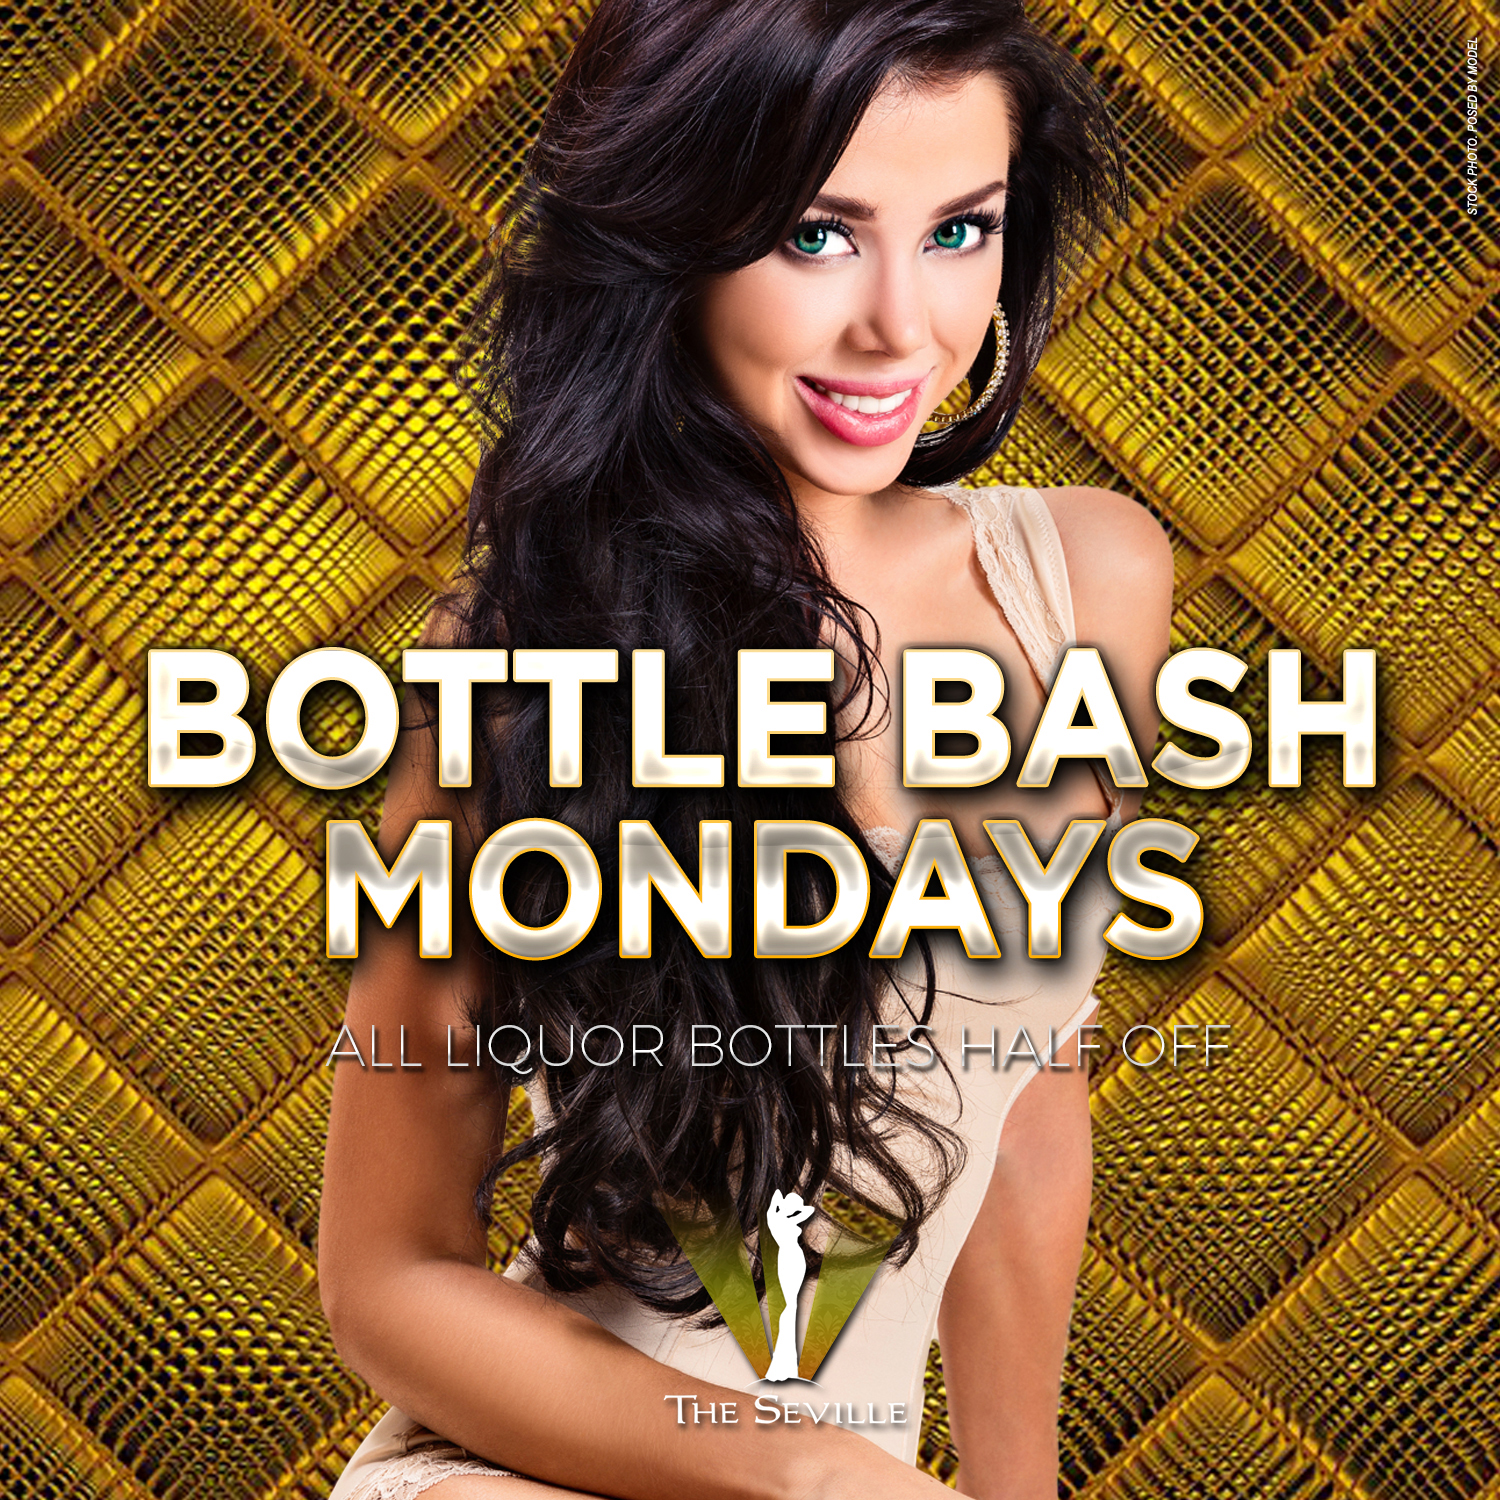 Monday Night Bottle Bash